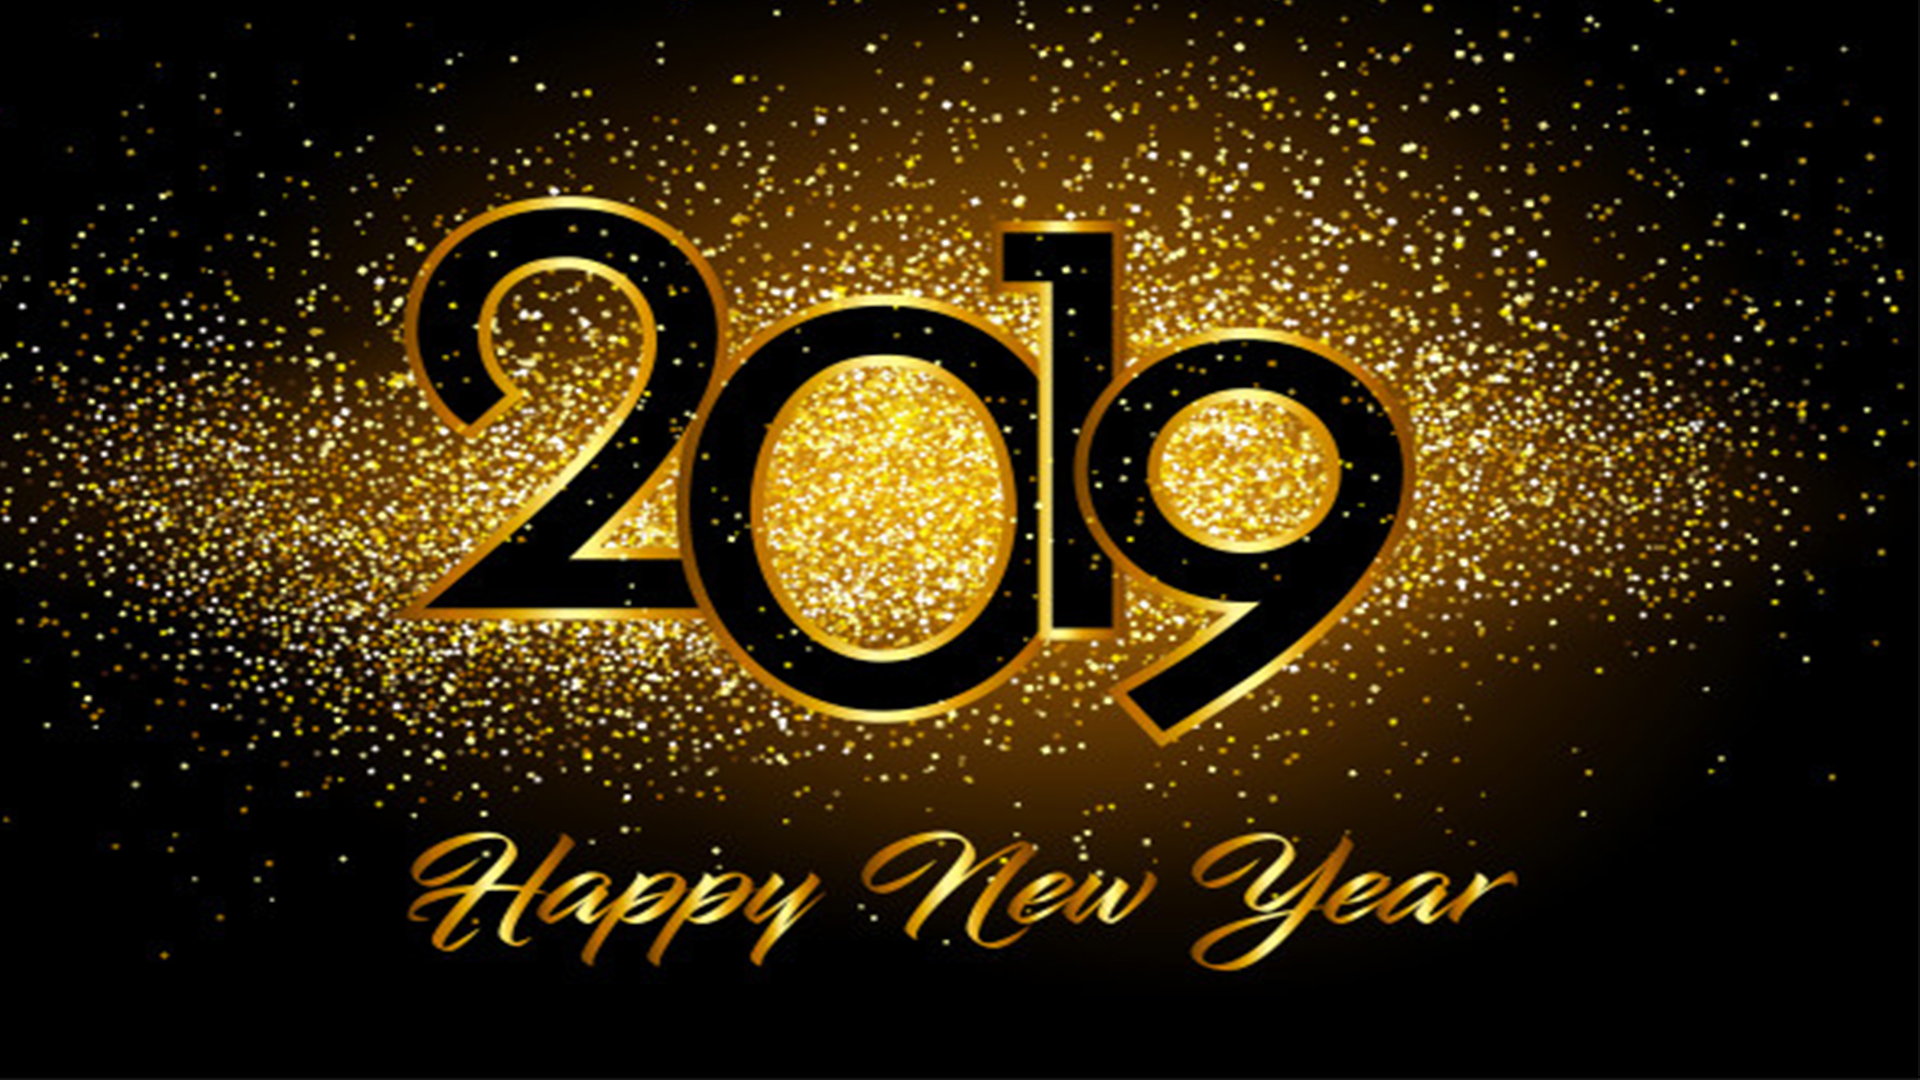 Happy New Year 2019 Hd Images Wallpapers Happy New Year